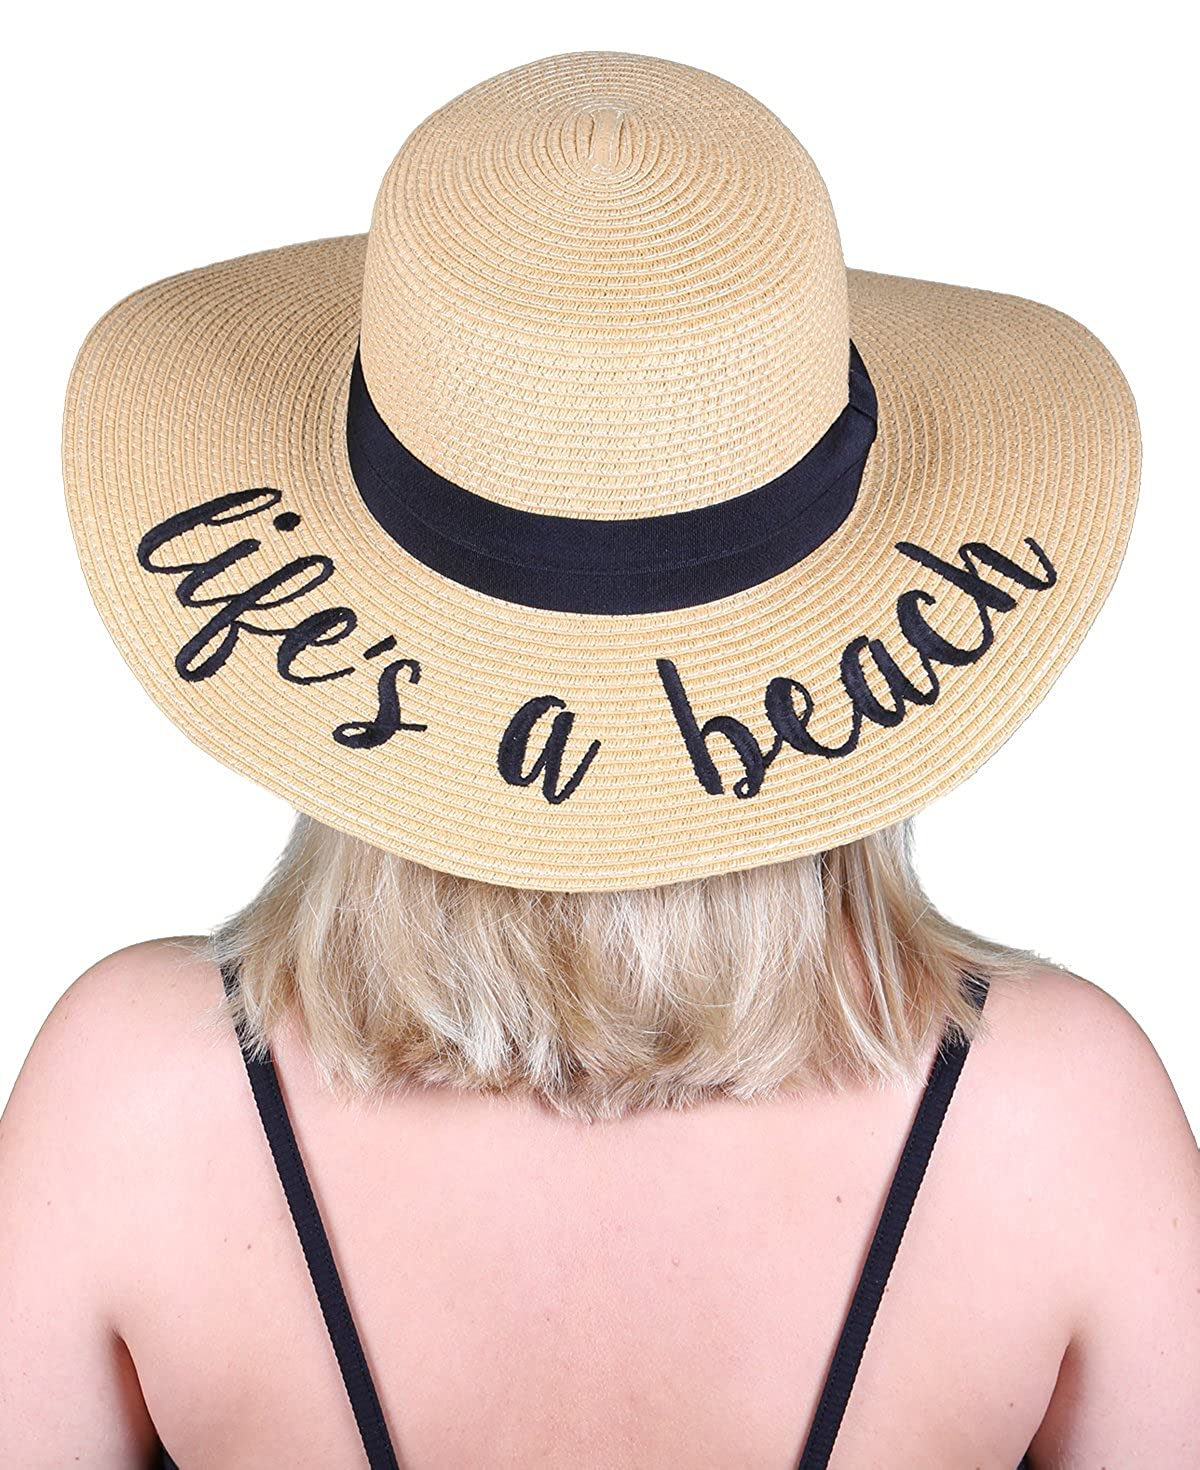 Life's a Beach Funky Junque Women's Bold Cursive Embroidered Adjustable Beach Floppy Sun Hat